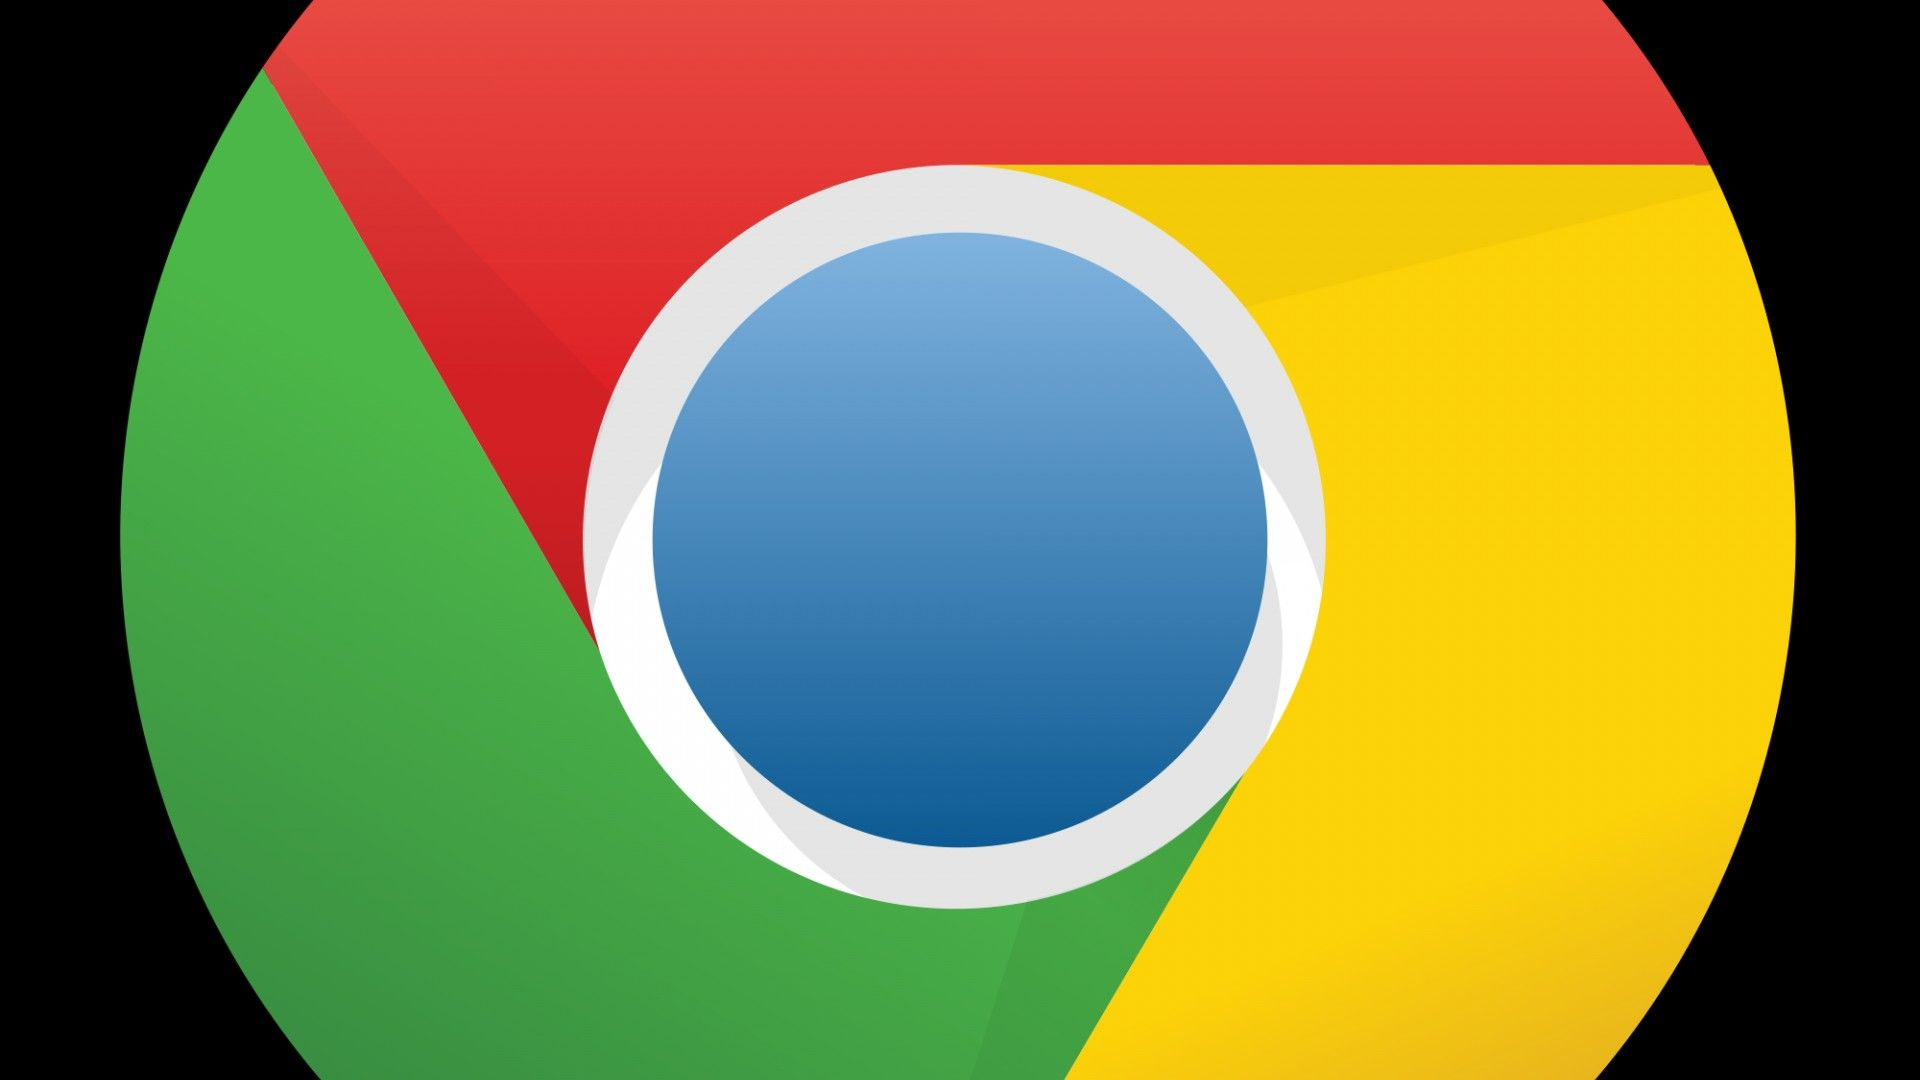 Google chrome themes gallery 2012 free download - Google Chrome Wallpapers Images Google Chromefree Download